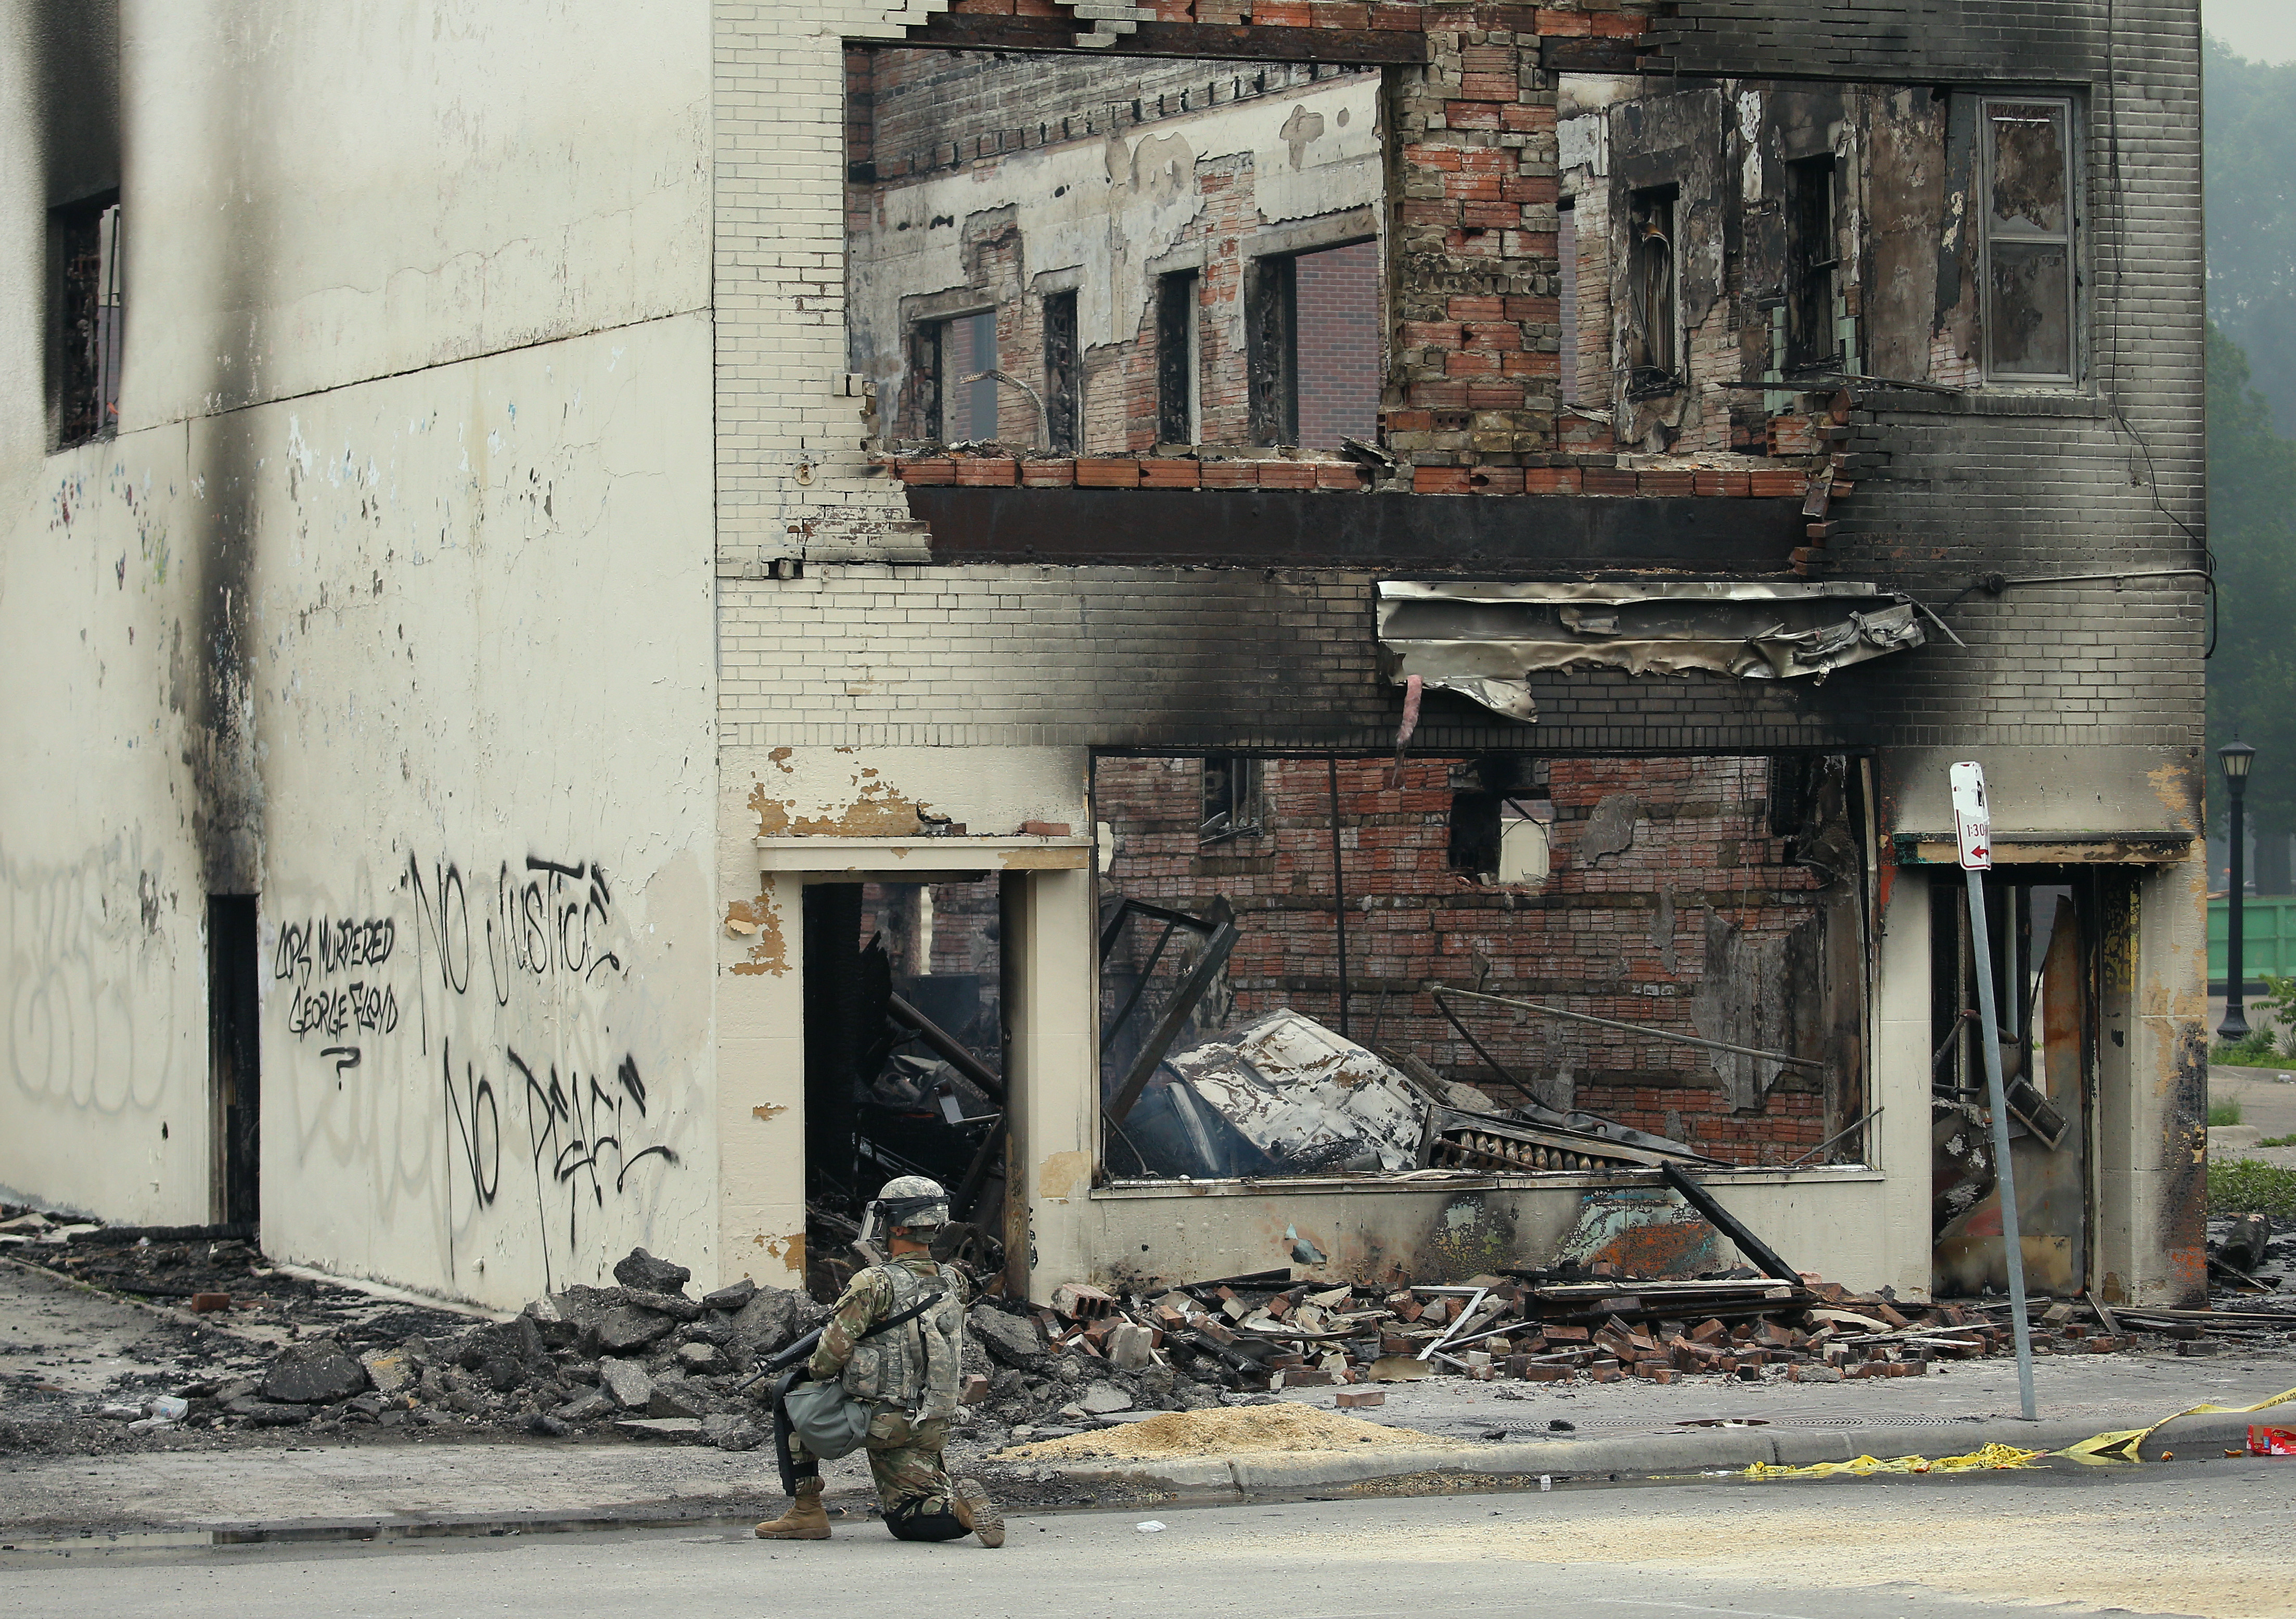 MINNEAPOLIS, MINNESOTA - MAY 28: A member of the National Guard patrols near a burned out building on the fourth day of protests on May 29, 2020 in Minneapolis, Minnesota. The National Guard has been activated as protests continue after the death of George Floyd which has caused widespread destruction and fires across Minneapolis and St. Paul. (Photo by Scott Olson/Getty Images)